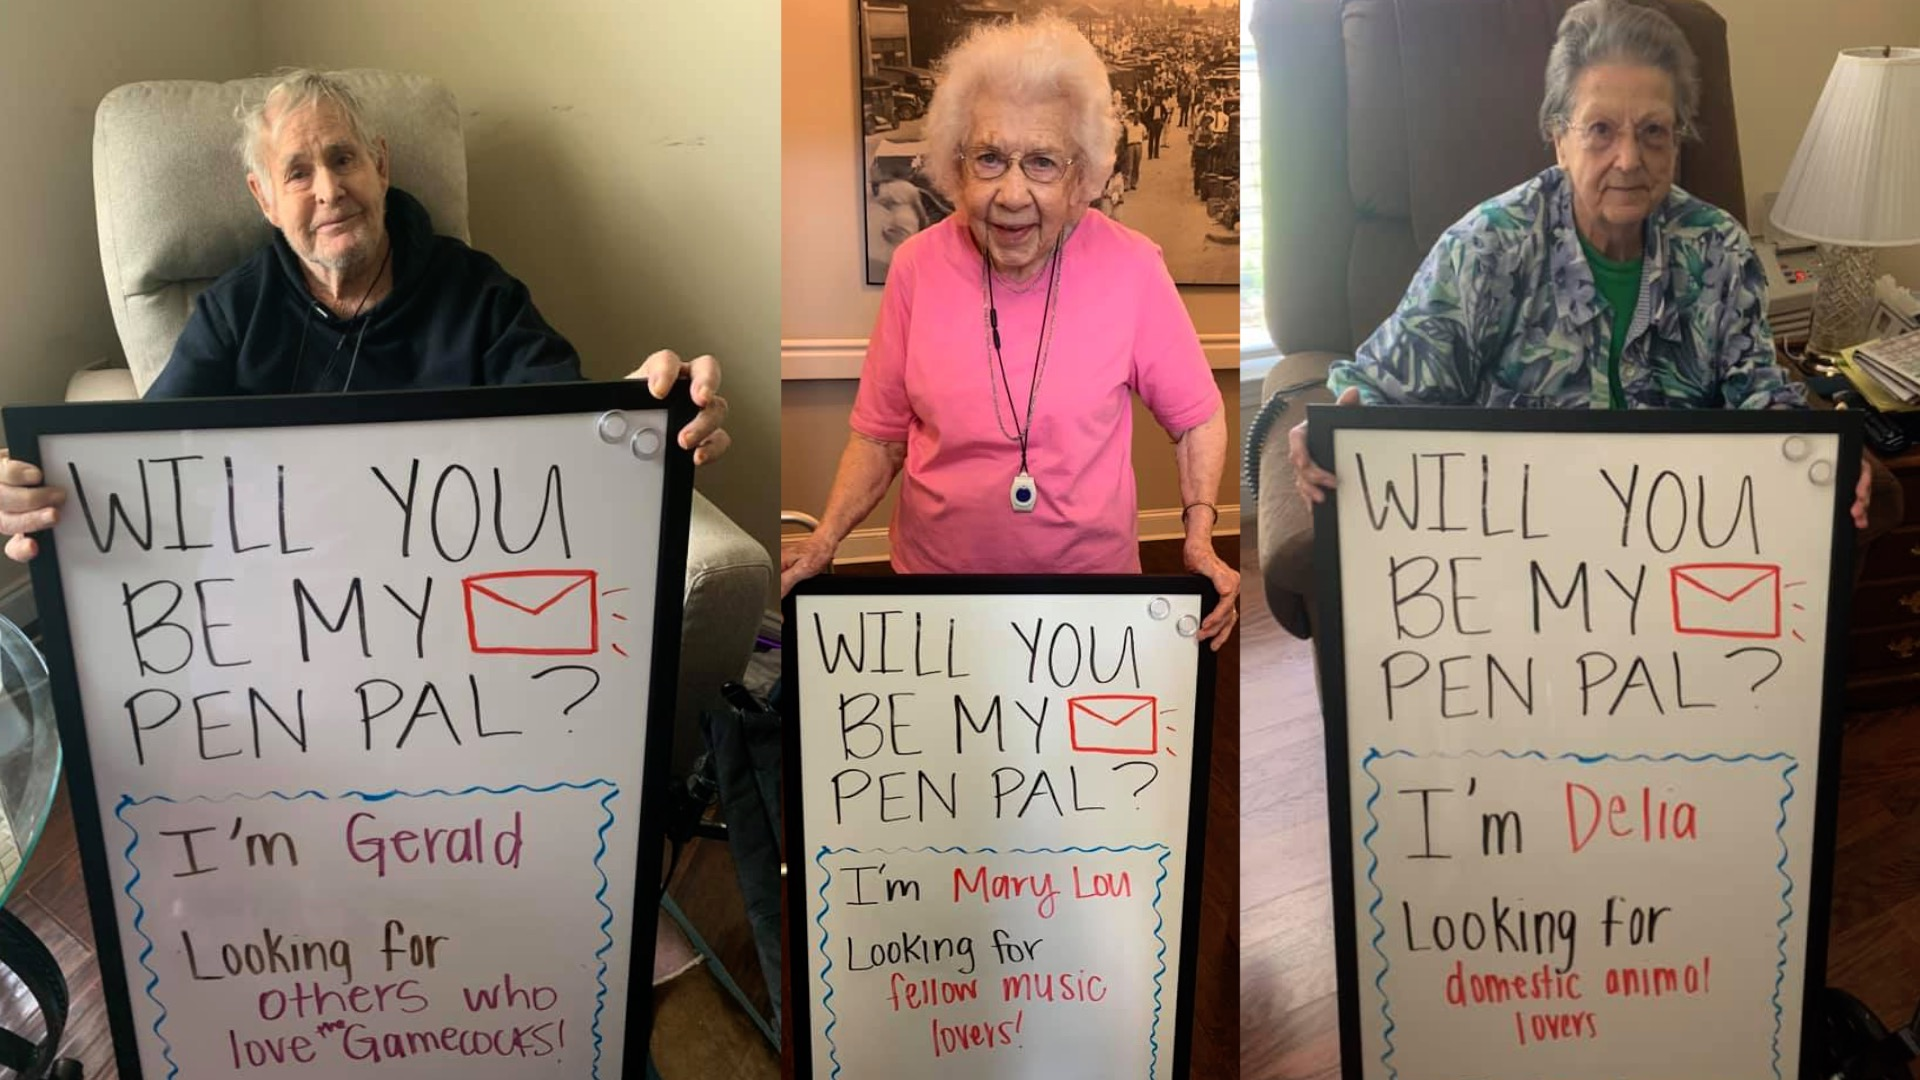 Dozens of Chapin assisted living residents looking for pen